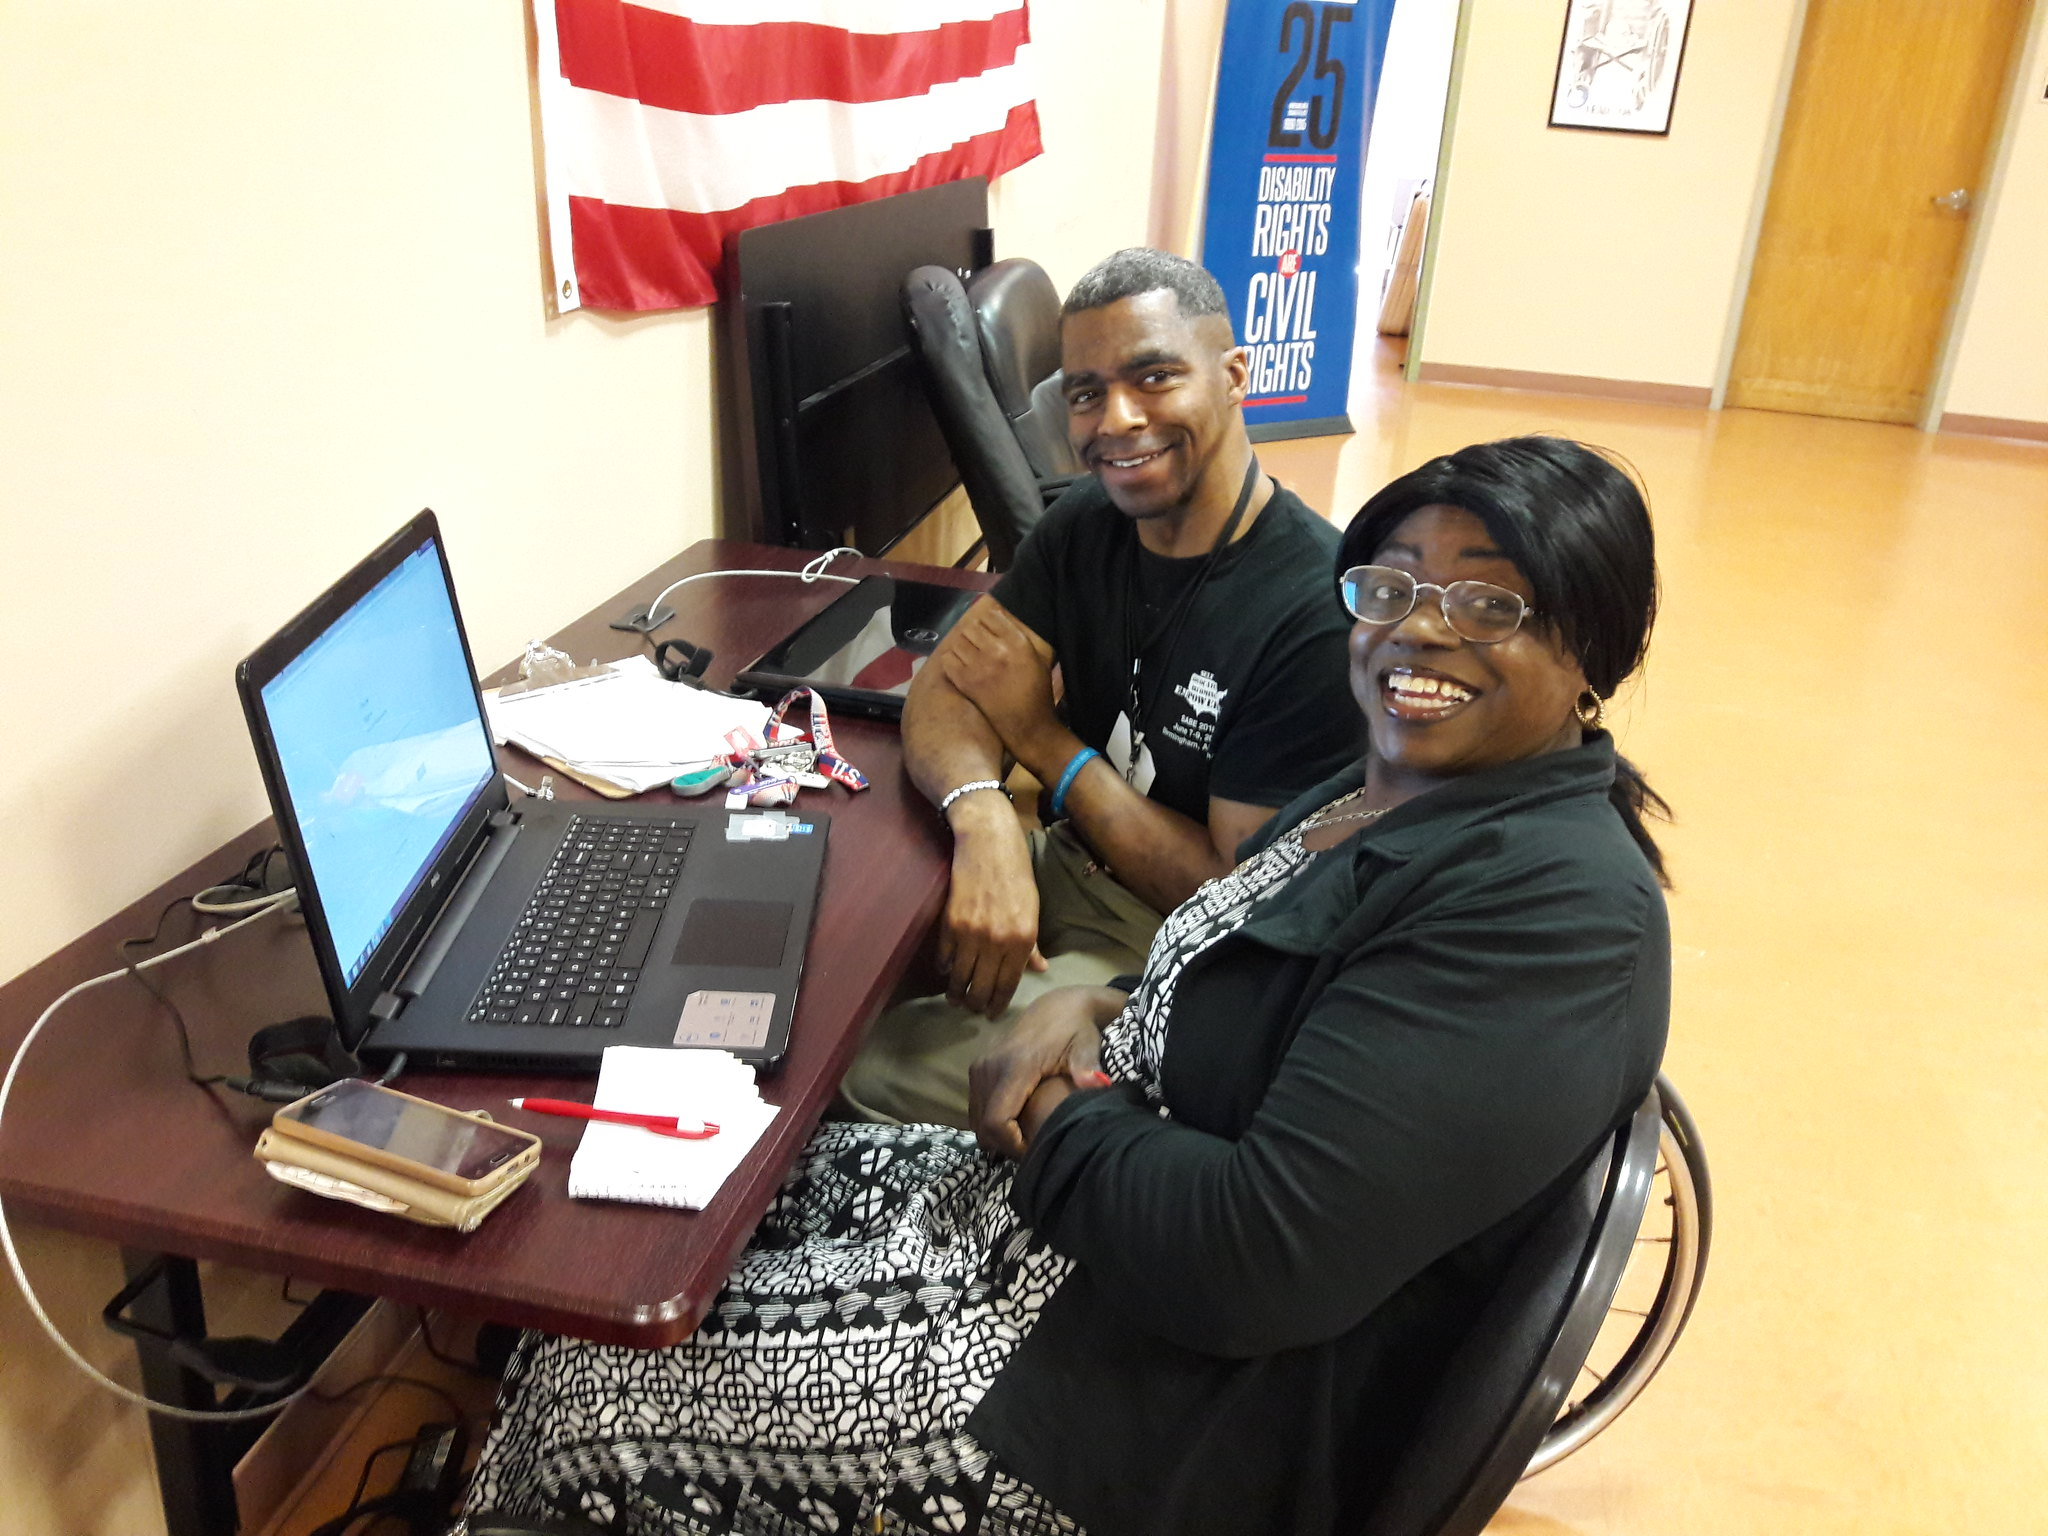 Two smiling people sit at a desk. One uses a wheelchair